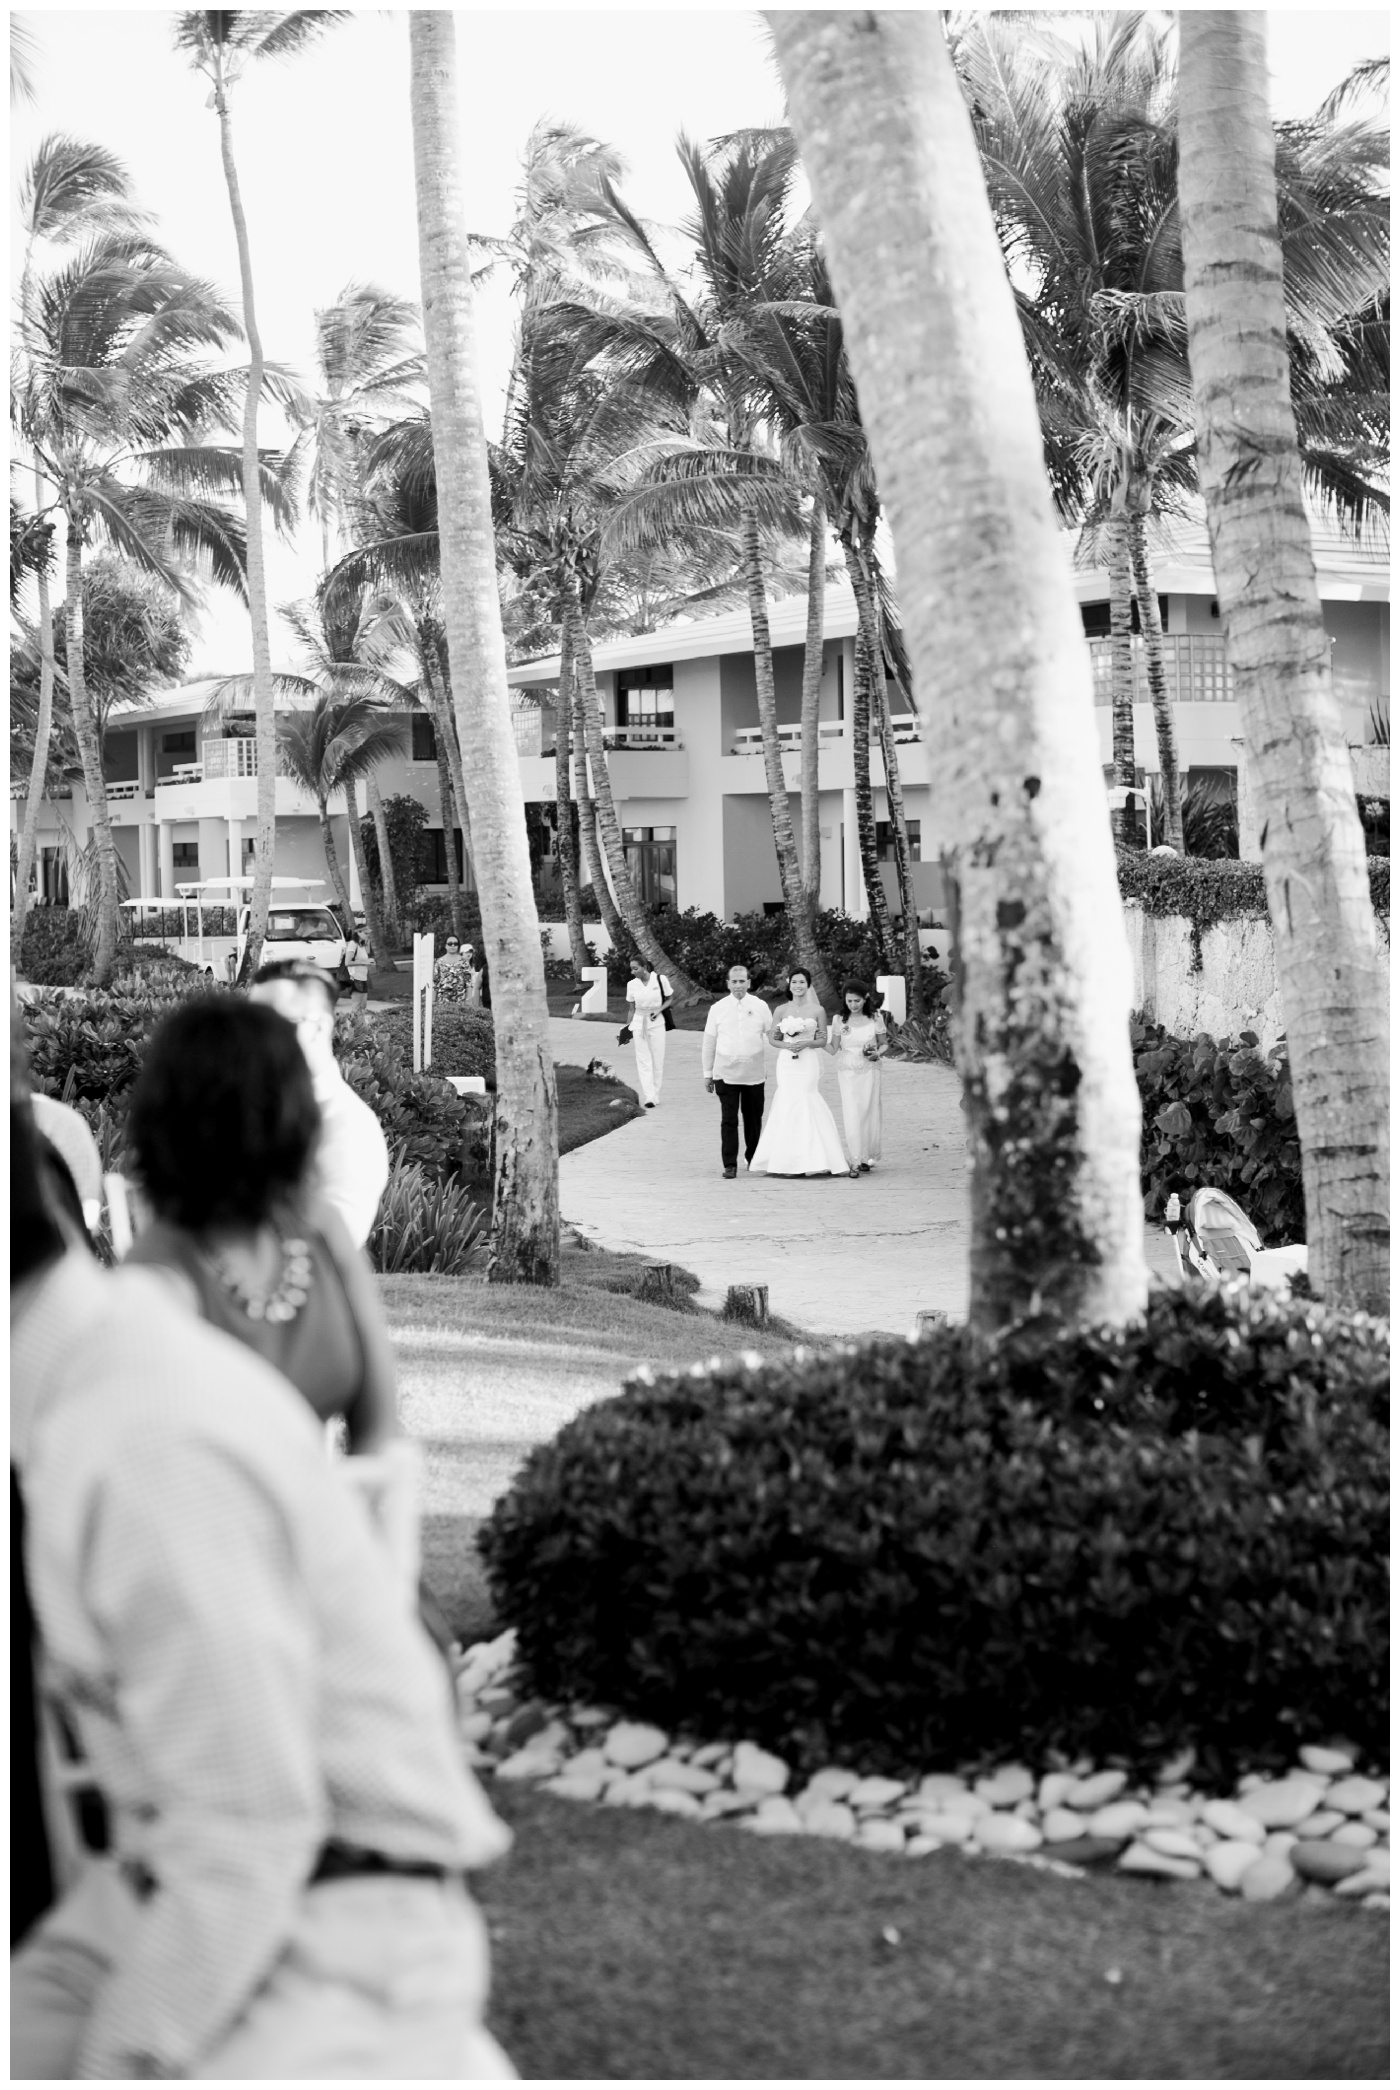 paradisus punta cana dominican republic wedding 036